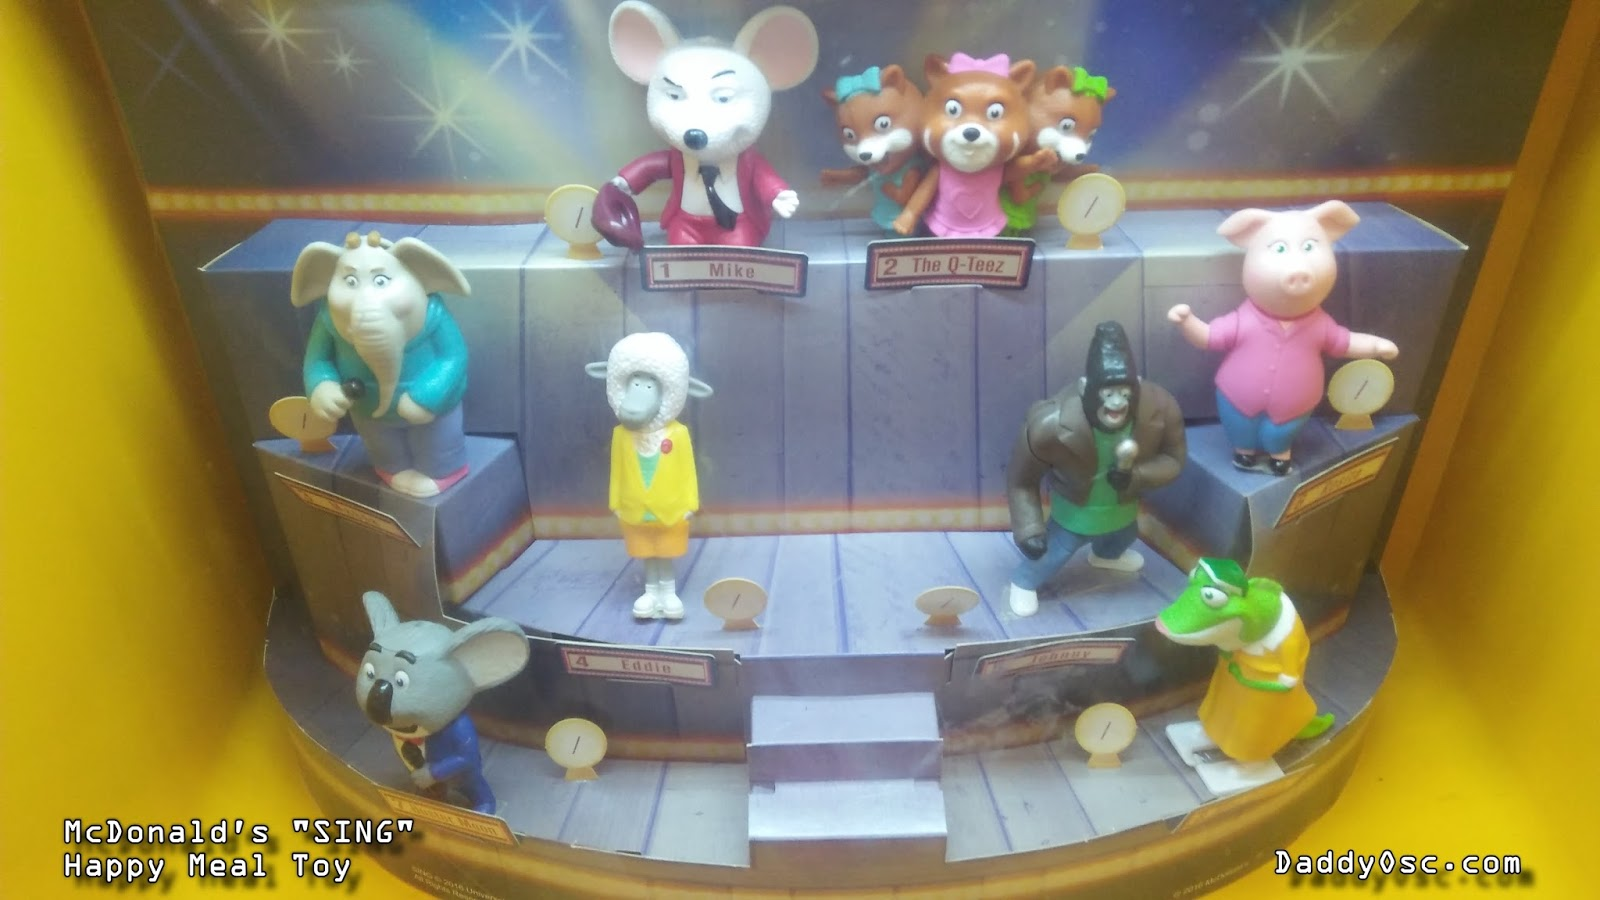 Toys From Mcdonald S Happy Meals : Start the year on a high note with mcdonald s sing happy